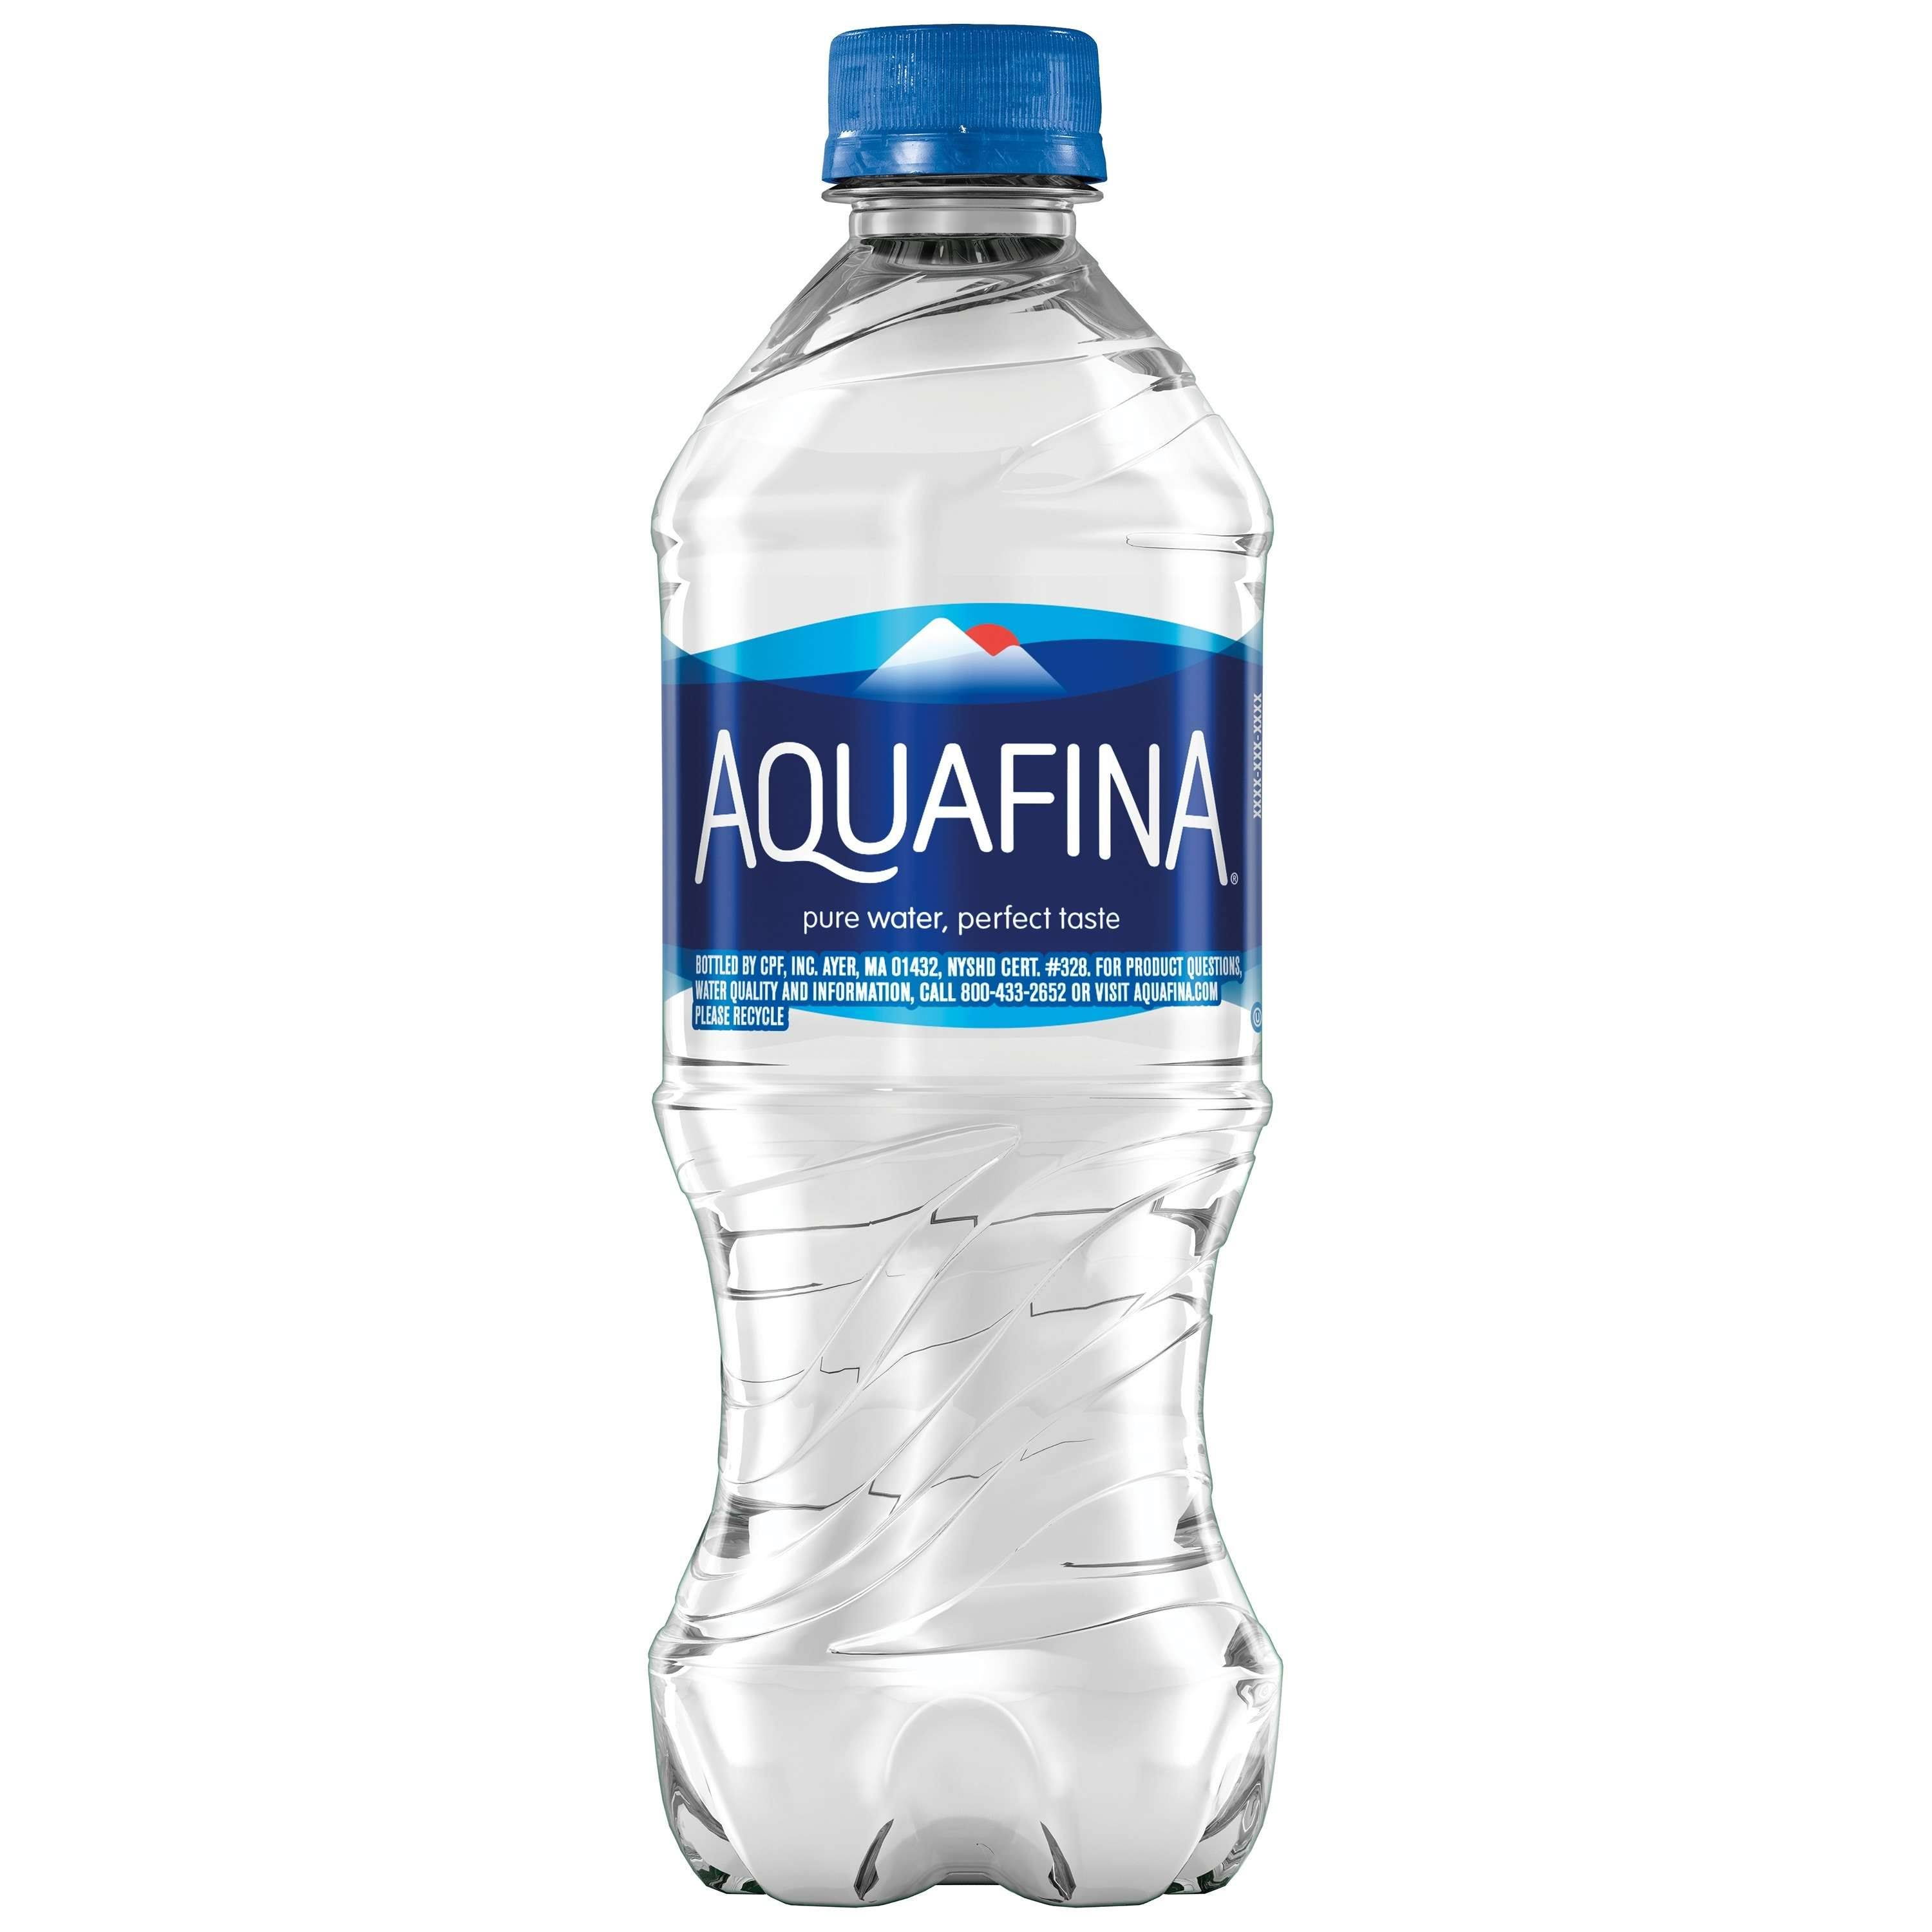 Aquafina Purified Drinking Water - 20oz